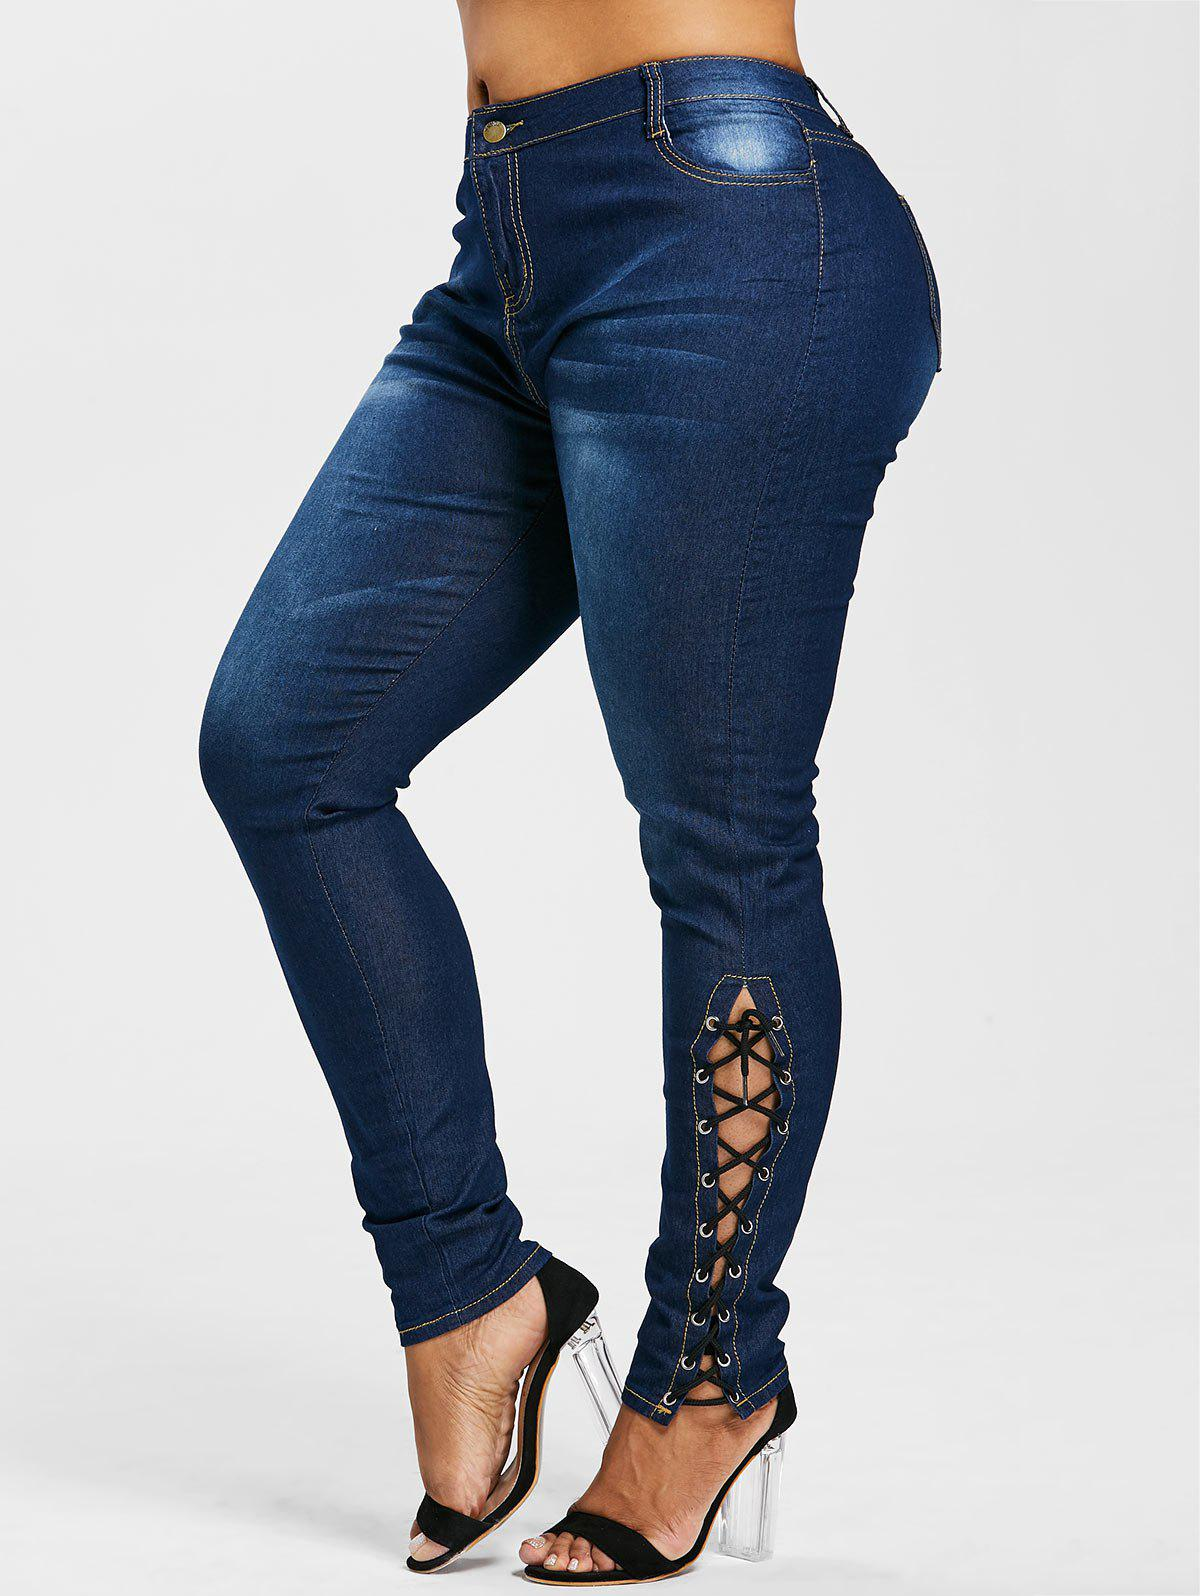 High Waist Side Lace Up Plus Size Jeans - DENIM DARK BLUE 2X